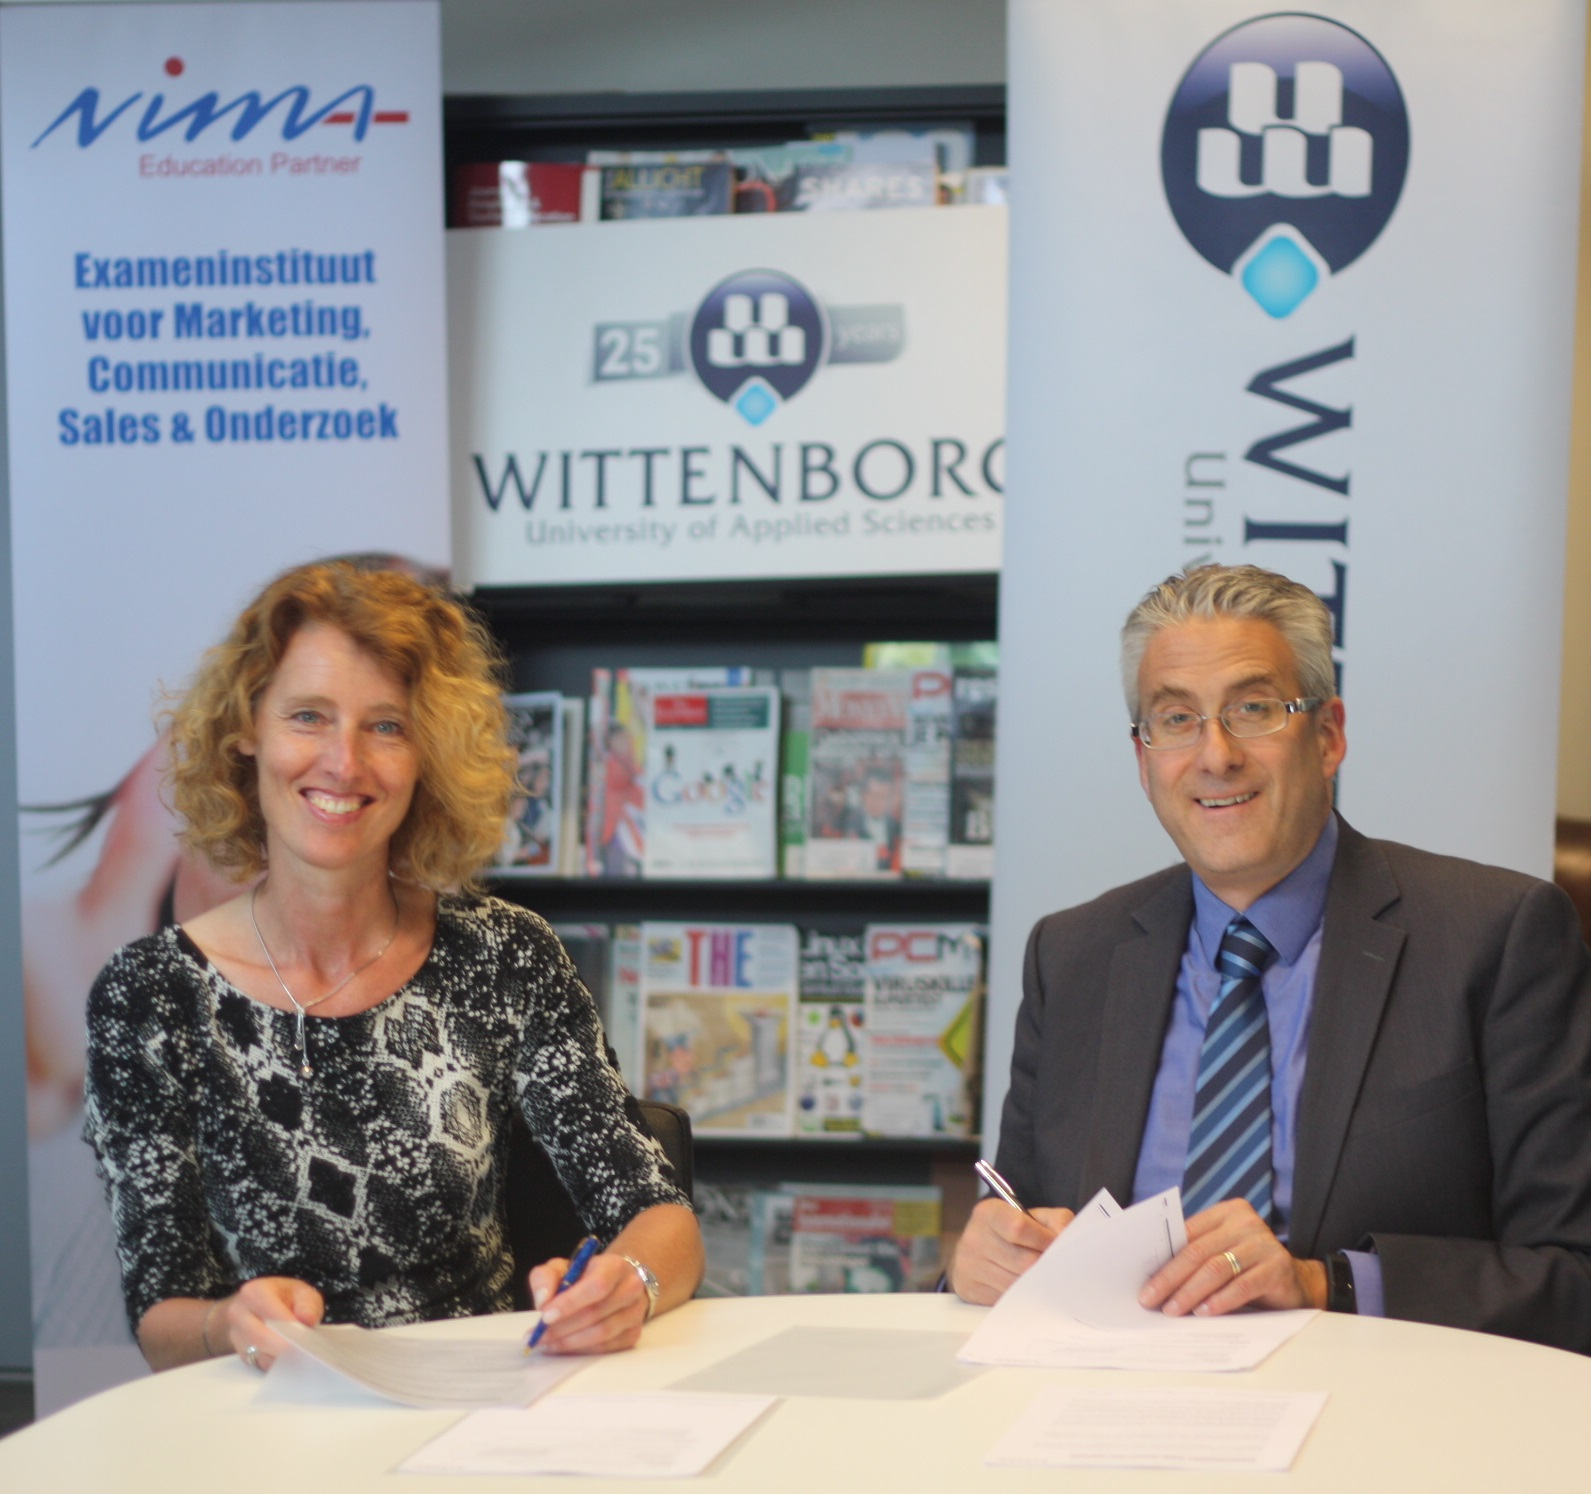 WUAS has signed a contract with the Netherlands Institute for Marketing (NIMA) to offer a fast tracked NIMA B1 and 2 course from September 2015. NIMA is the Dutch authoritative body and exam institute in the field of marketing